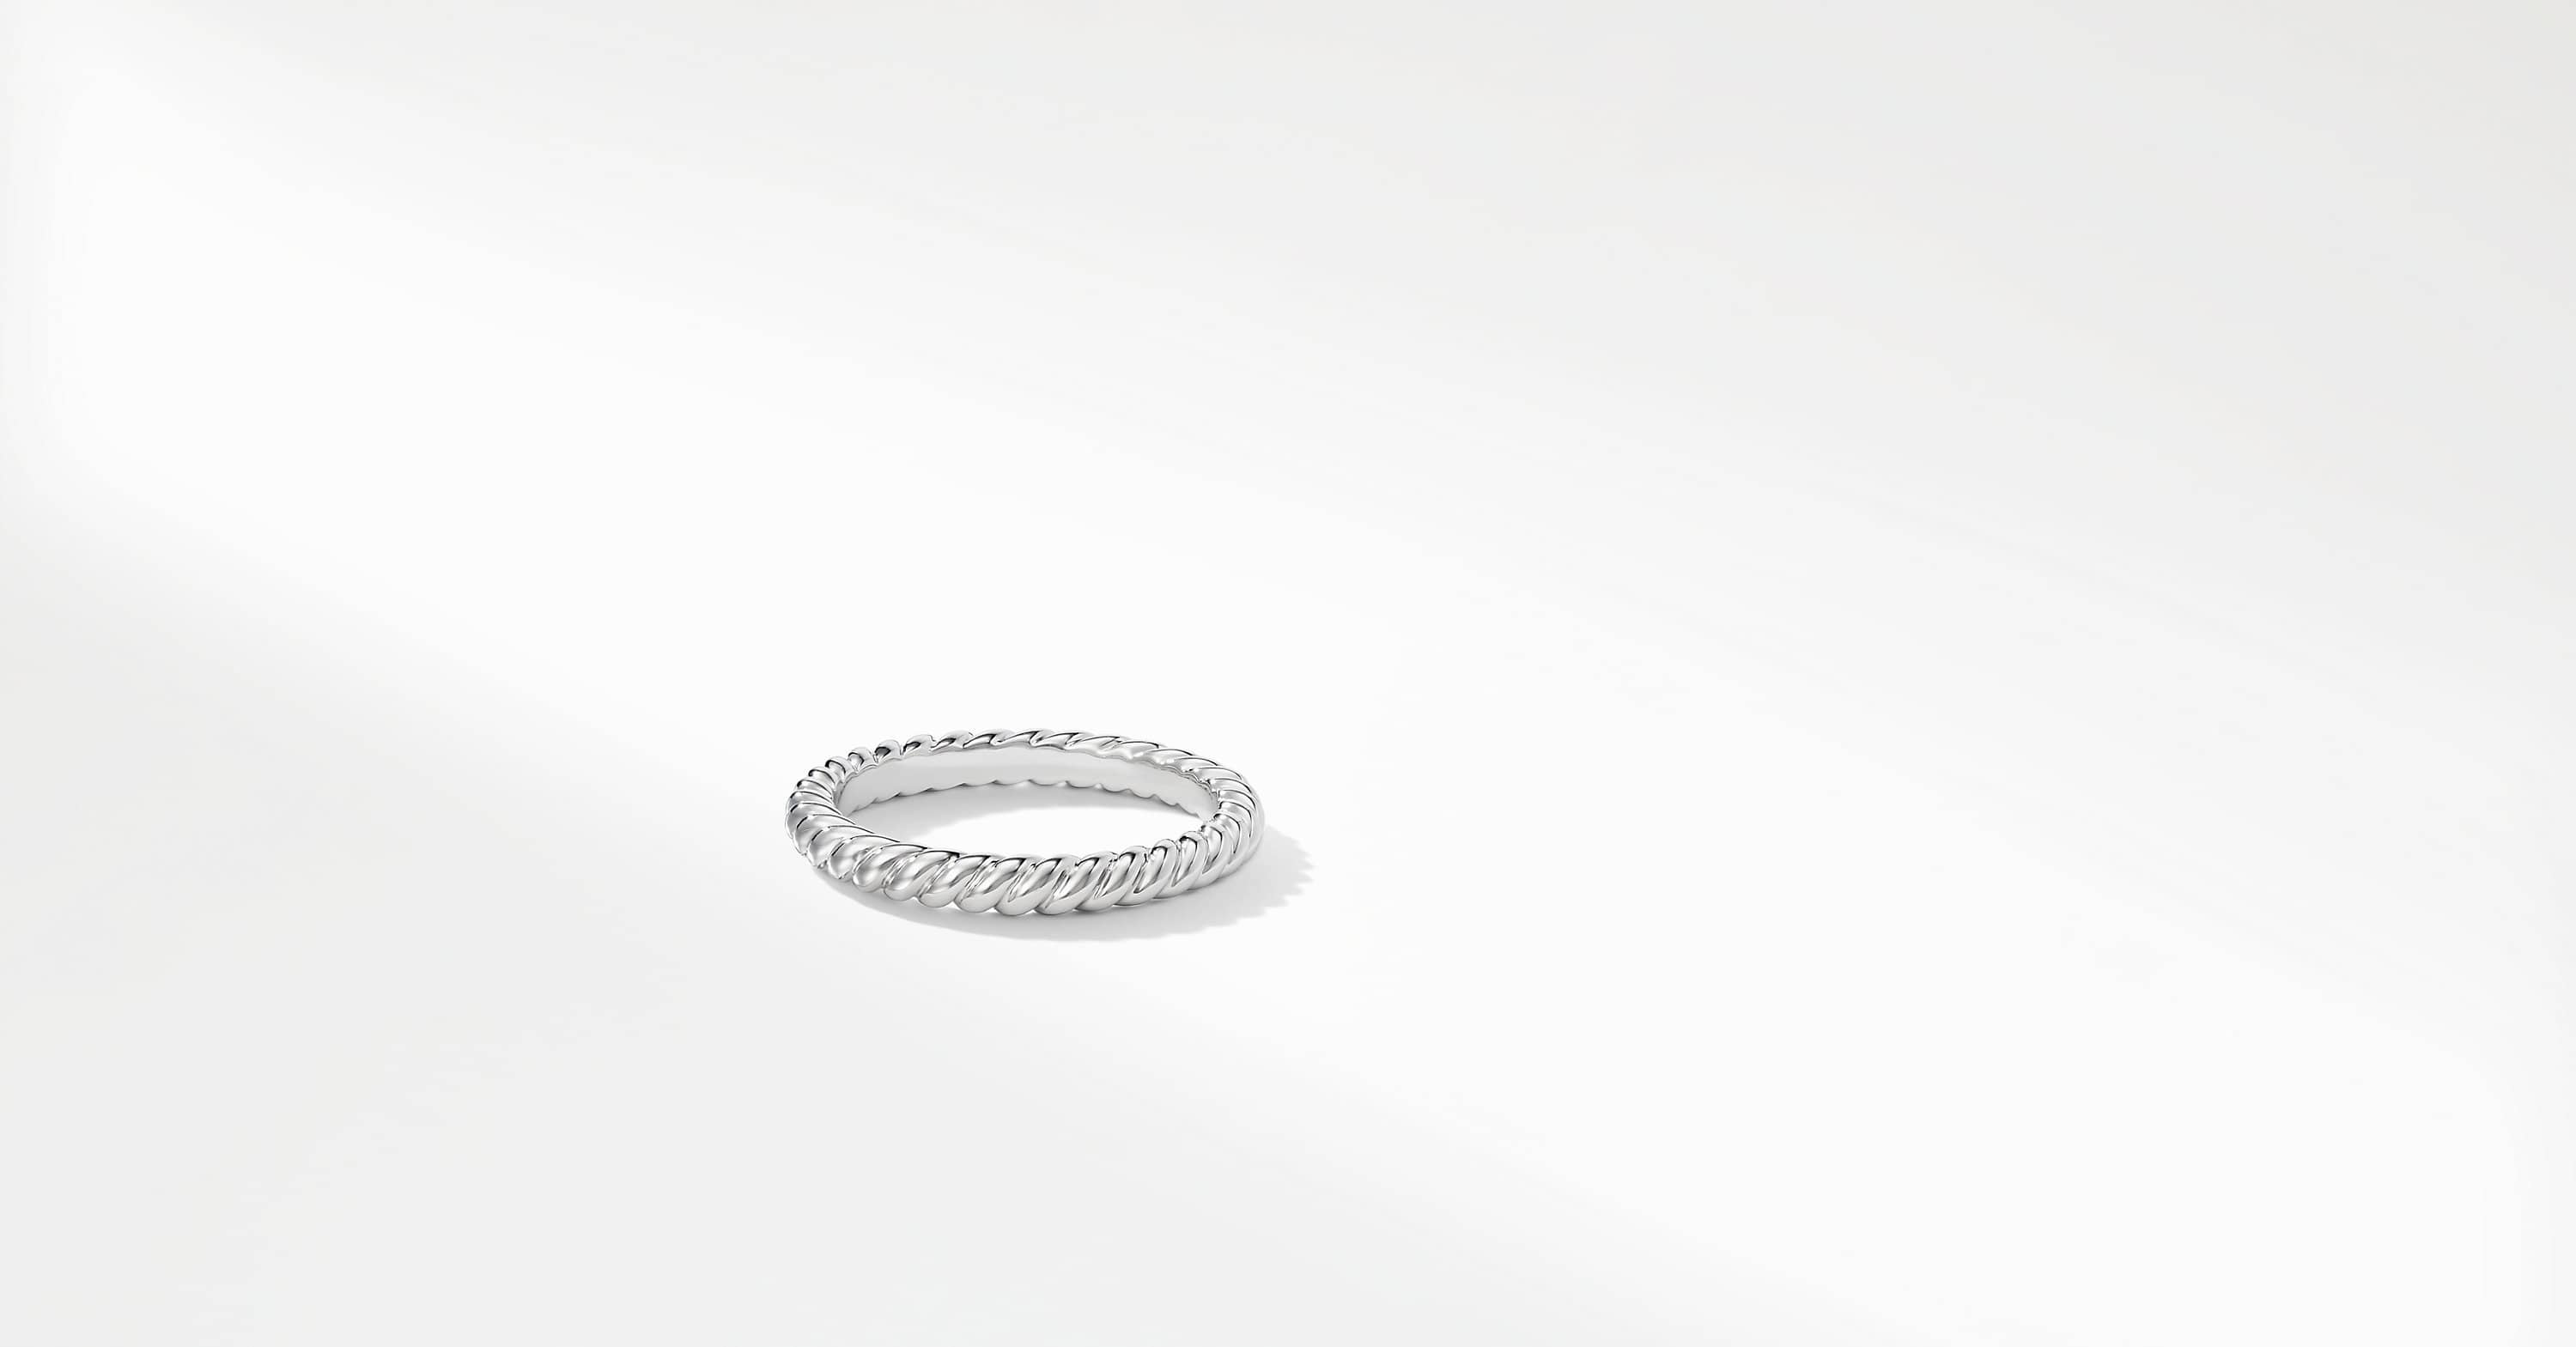 DY Unity Cable Wedding Band in Platinum, 2.45mm